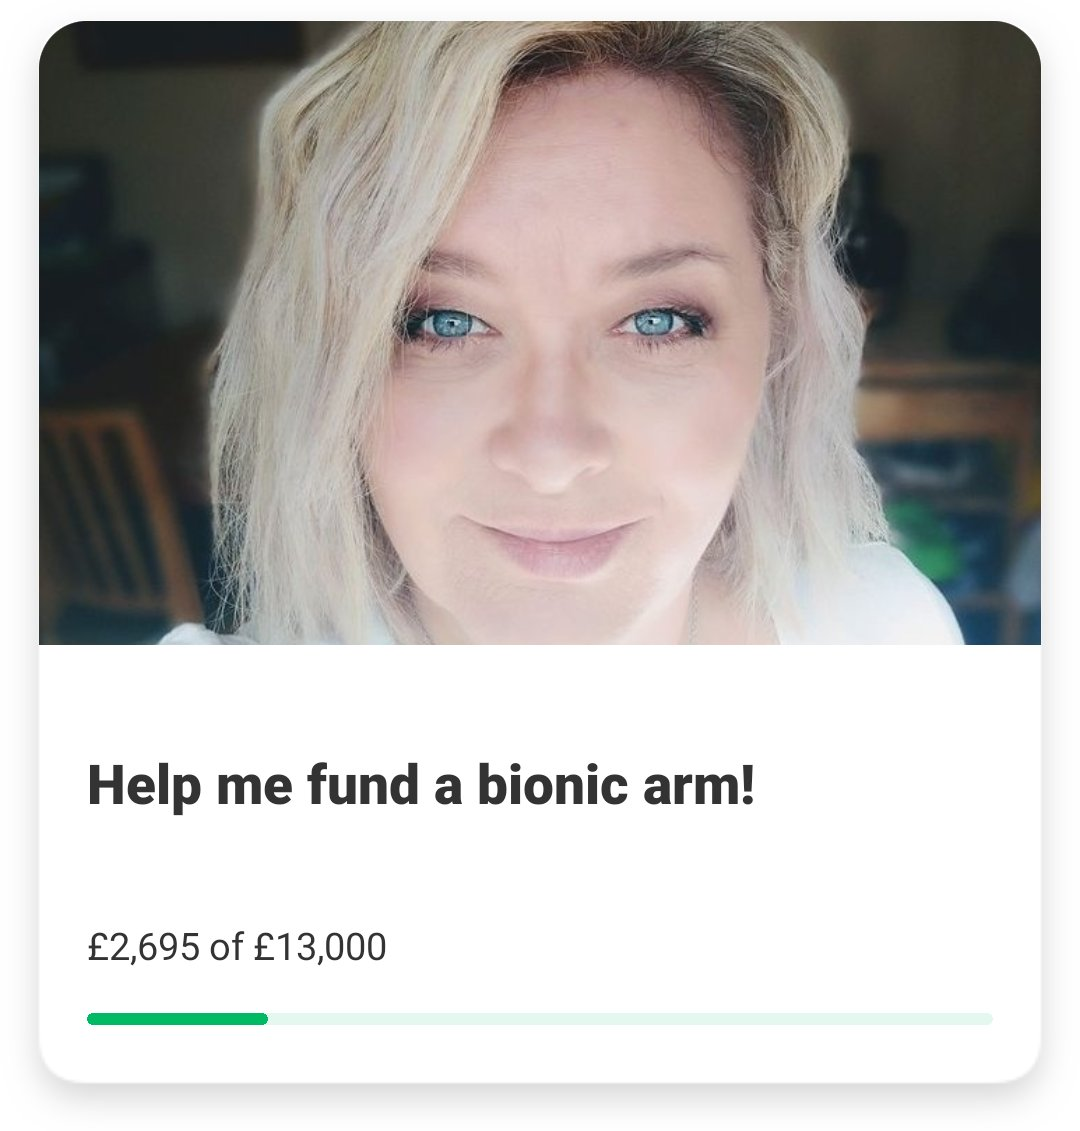 📢20% funded!🎊 You're all awesome, thank you so much! Every day, thanks to some selfless and generous human beings, I'm getting that little bit closer to an @openbionics #HeroArm 🦾 #bionic #disability #limbdifference #AlitaArmy #BionicBev #prosthetics #disabledtwitter #disabled https://t.co/bu9tIx76Xo https://t.co/mWBxU2VSsz